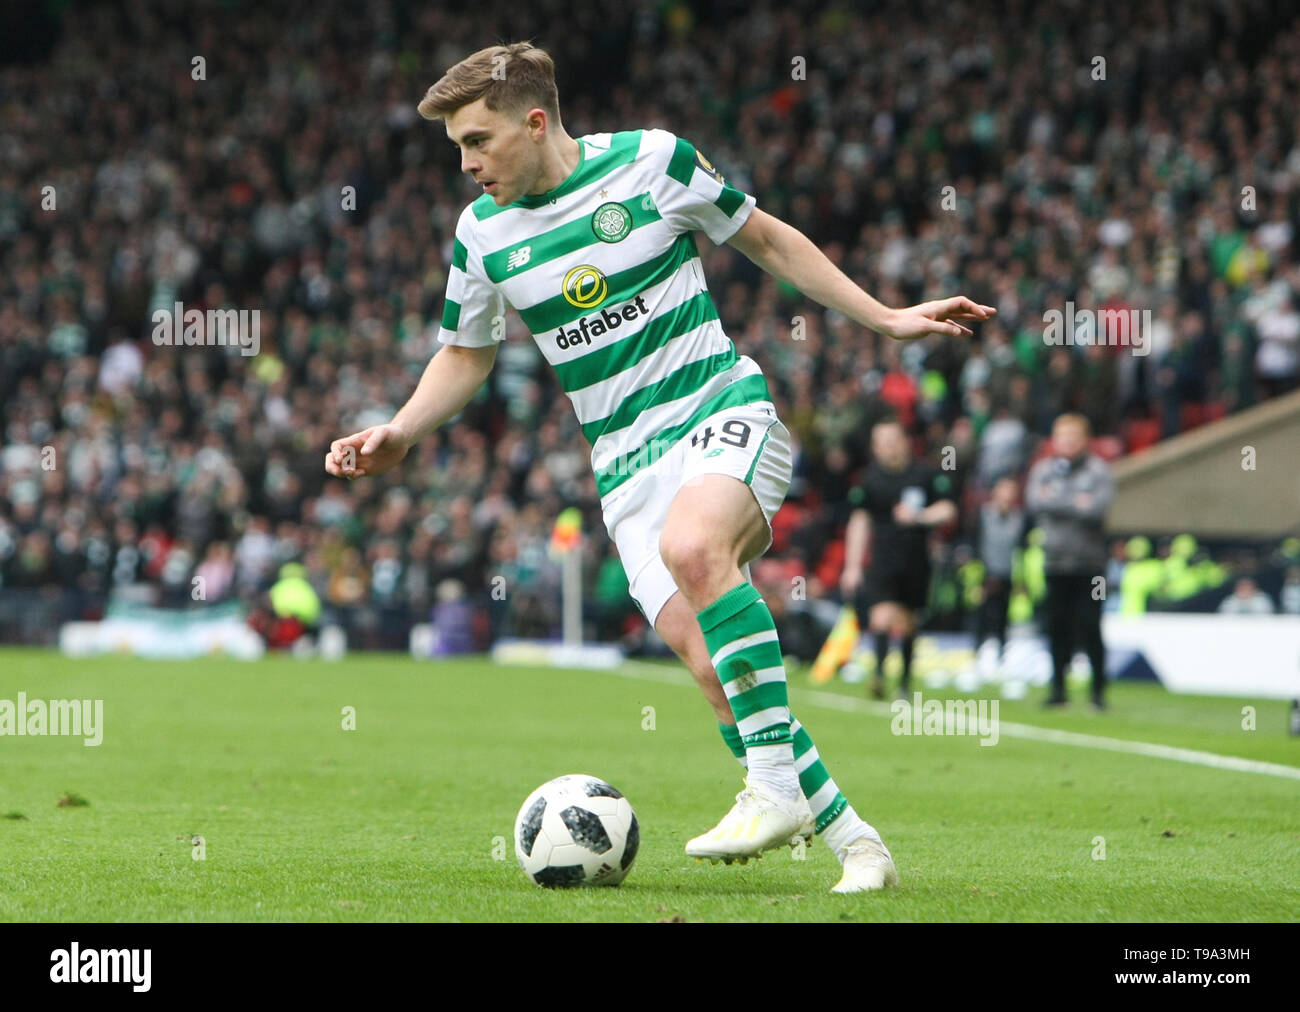 Glasgow, Scotland - April 14. James Forrest of Celtic during the William Hill Scottish Cup semi final between Celtic and Aberdeen at Hampden Park on April 14, 2019 in Glasgow, Scotland. (Photo by Scottish Borders Media/Alamy Live News) - Stock Image